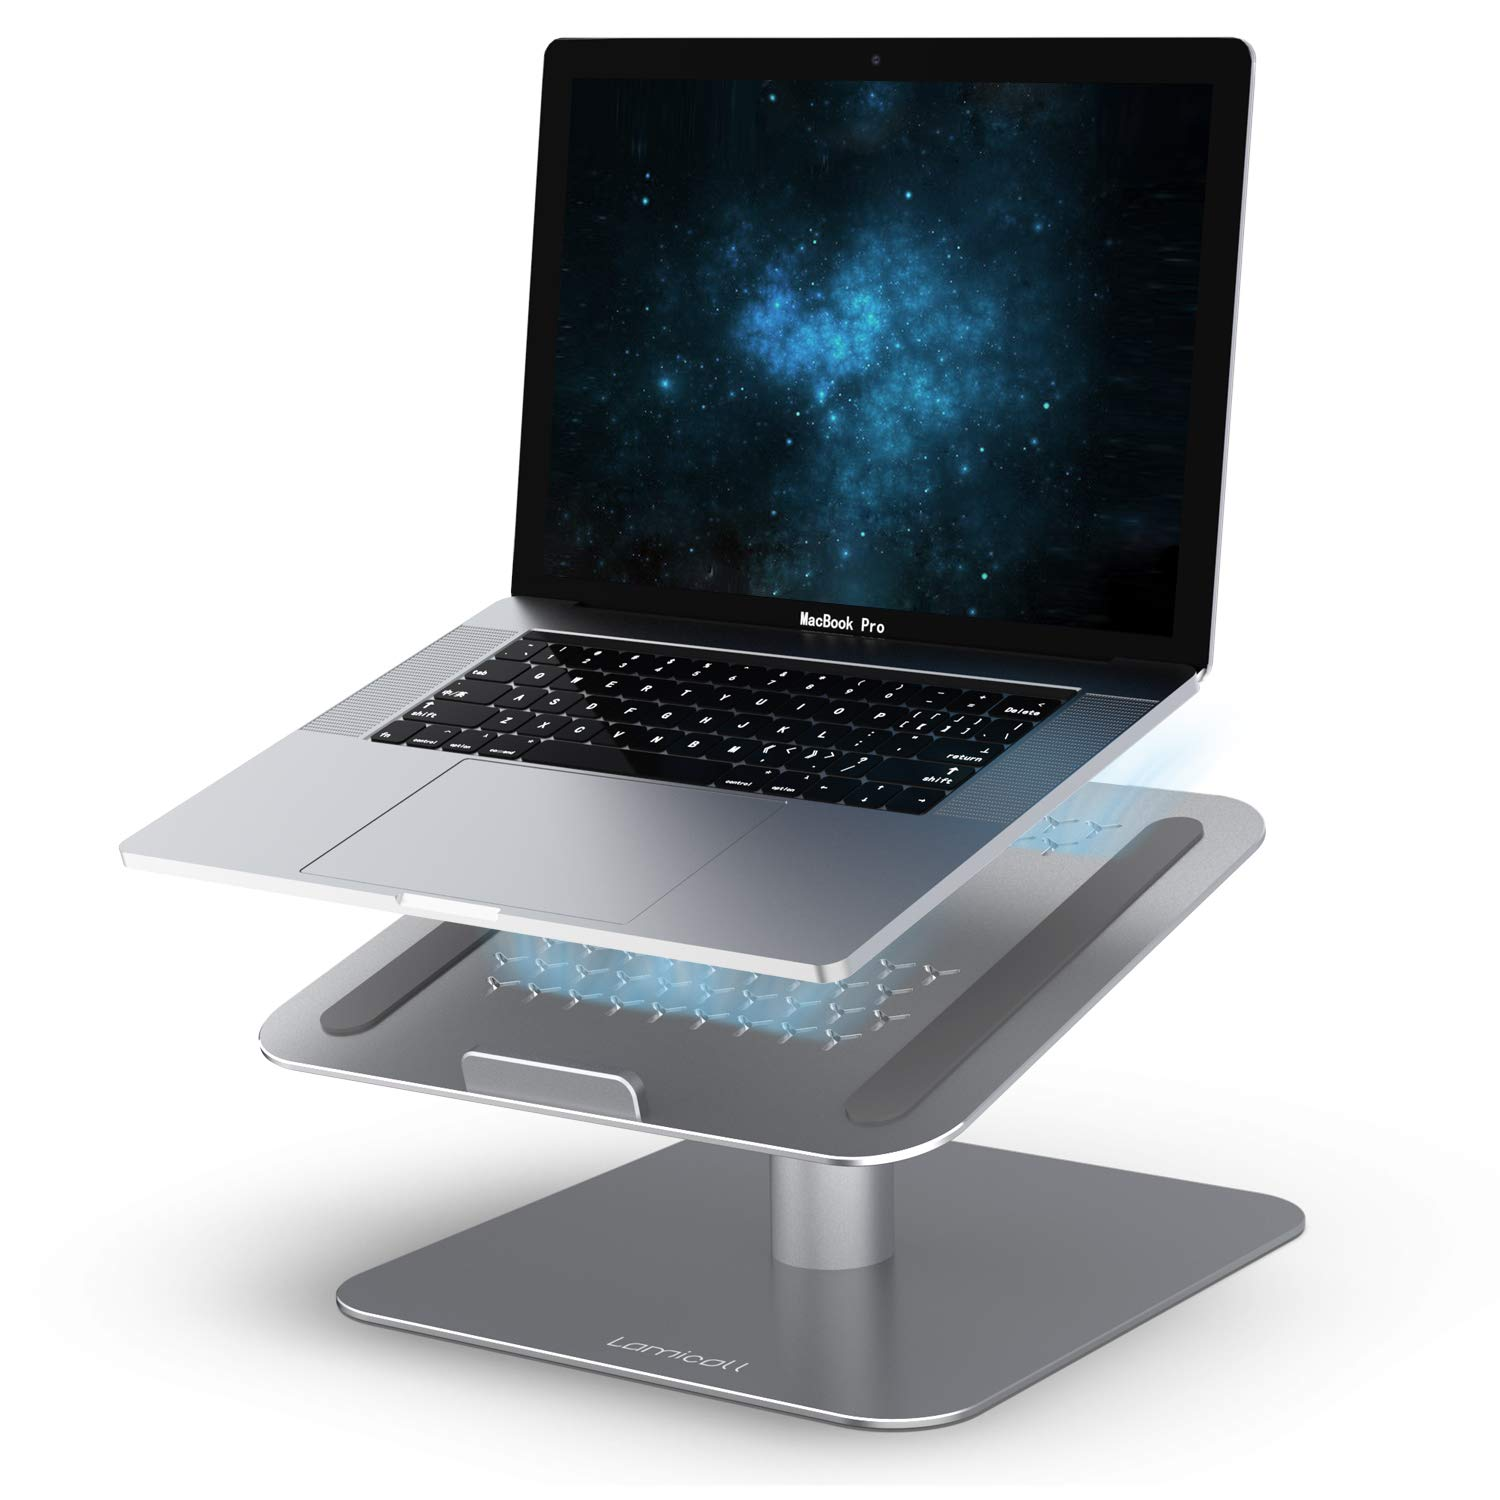 Laptop Computer Stand, Lamicall Laptop Holder : Ventilated Laptop Riser for Desk, 360 Rotating, Compatible with MacBook Air Pro, Dell XPS, HP, ASUS, Lenovo More Laptop Notebooks - Space Gray by Lamicall